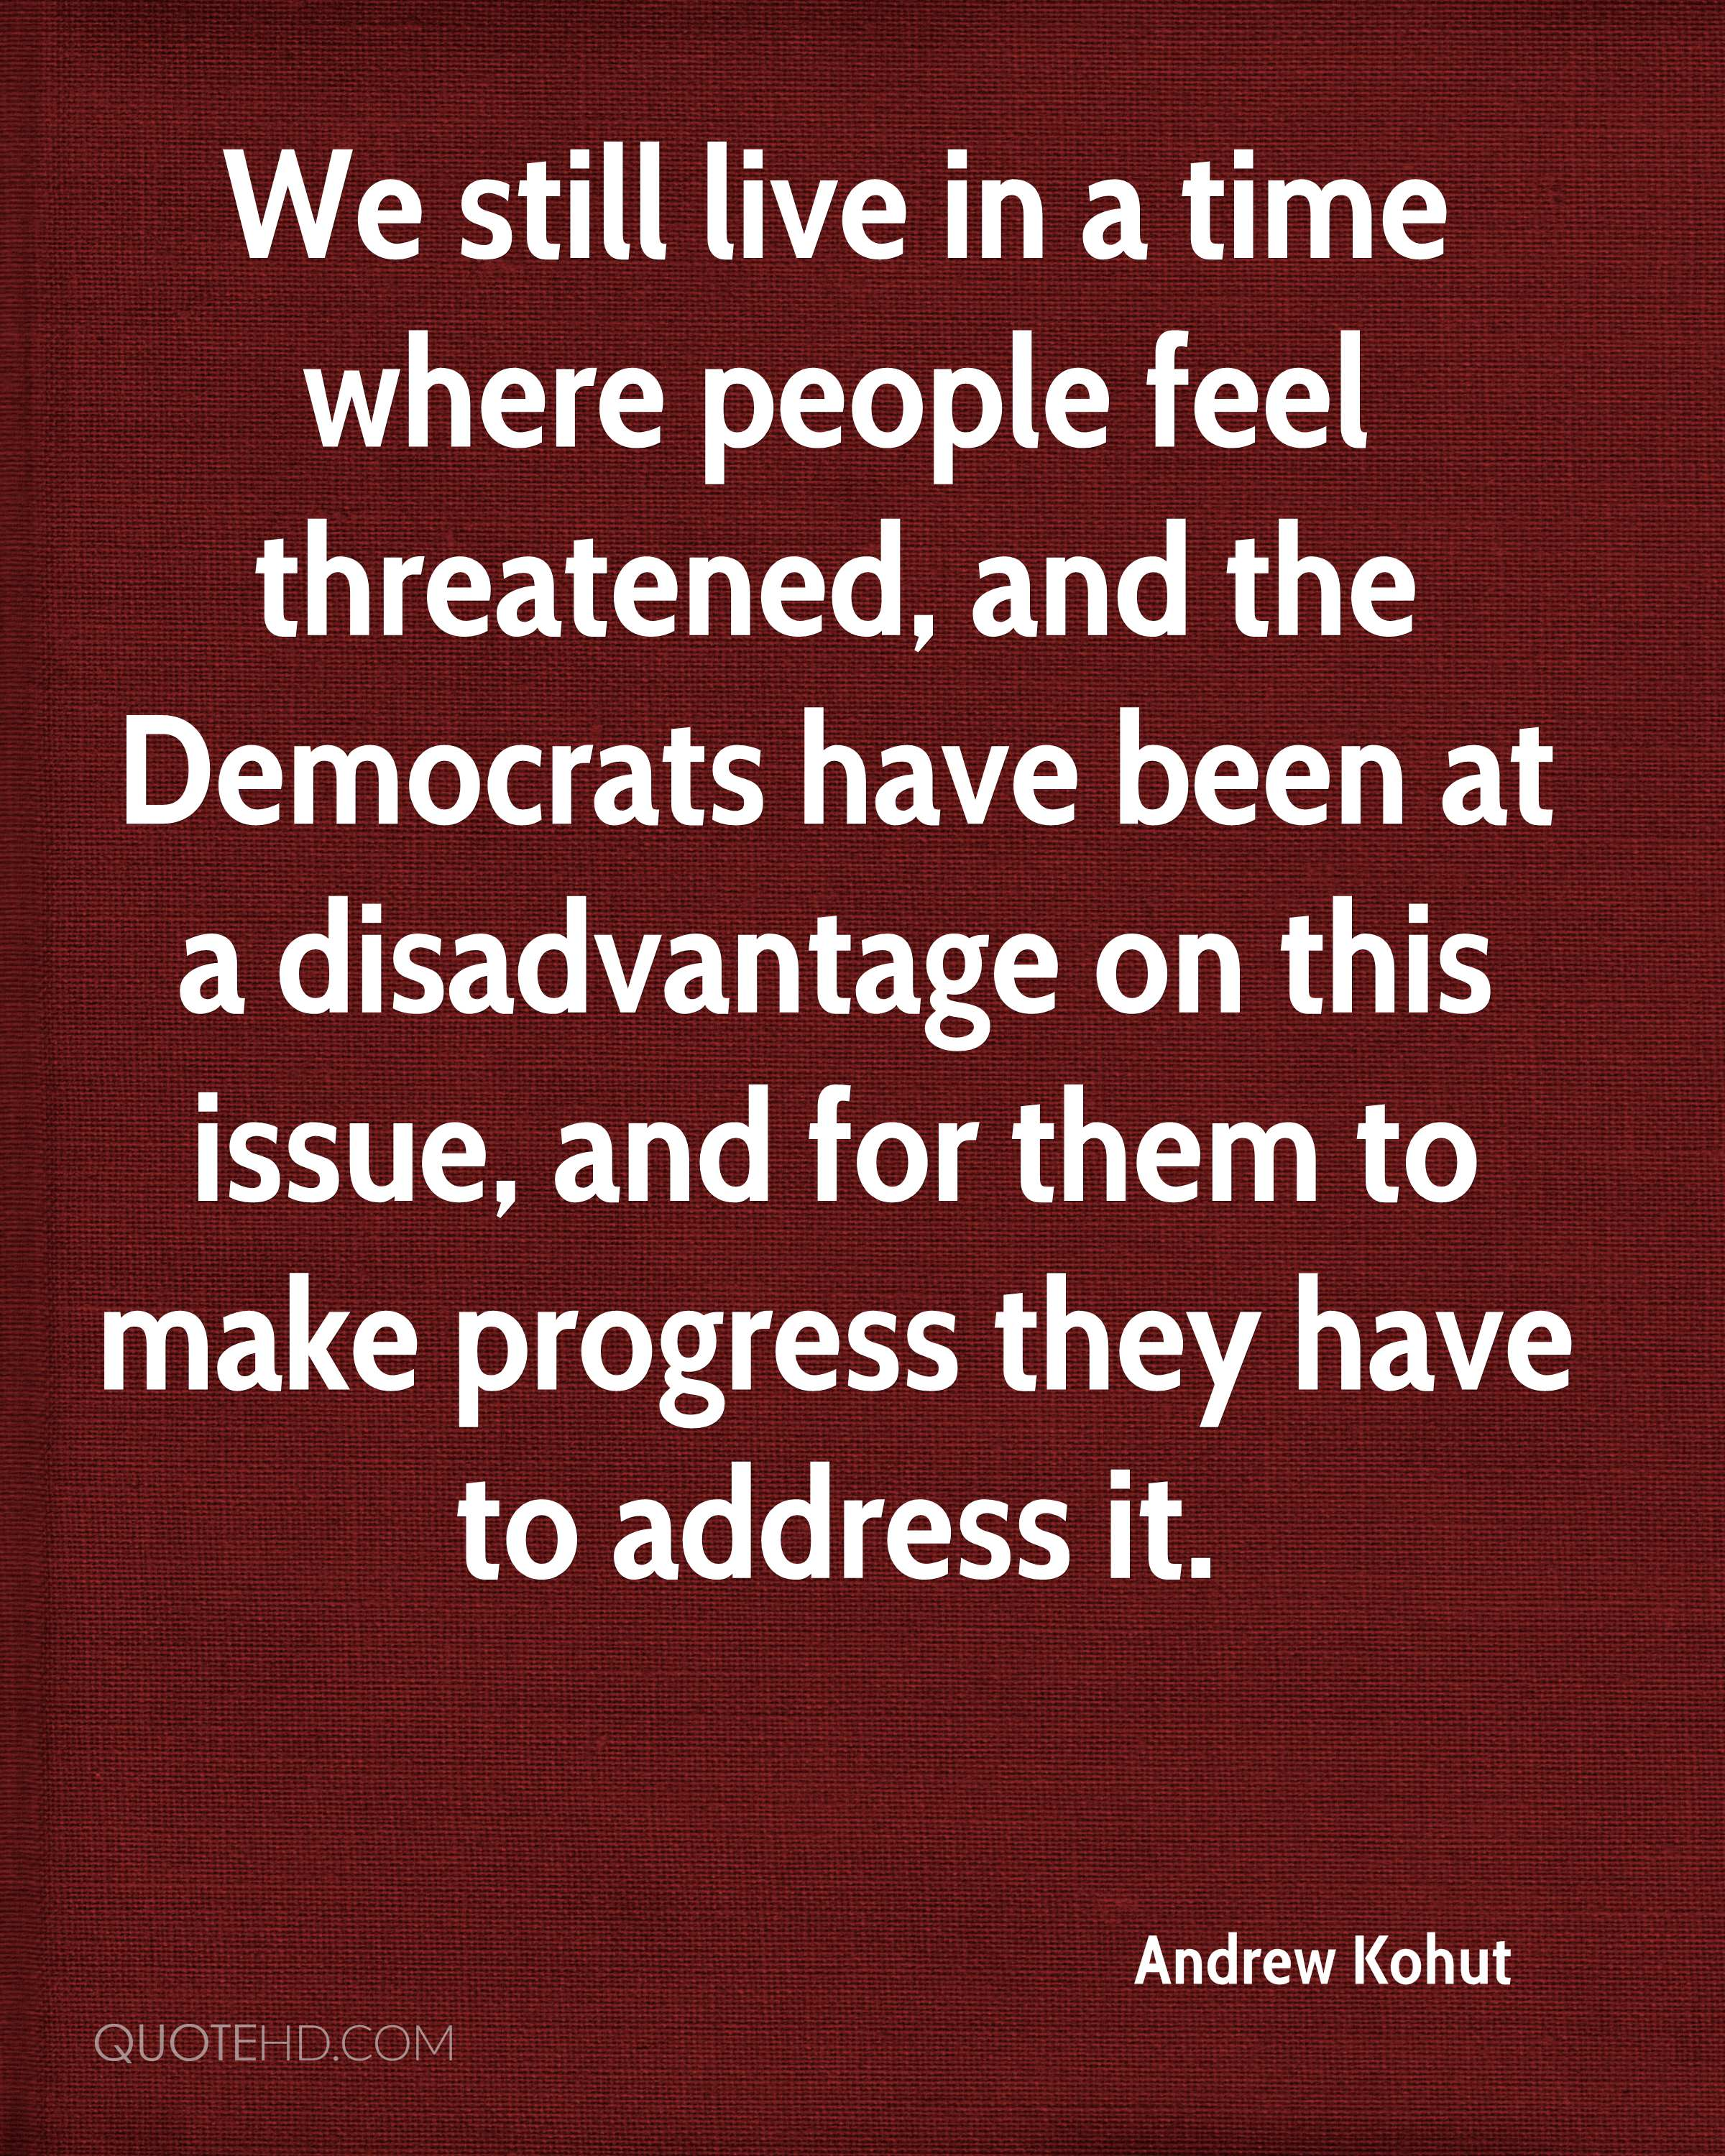 We still live in a time where people feel threatened, and the Democrats have been at a disadvantage on this issue, and for them to make progress they have to address it.